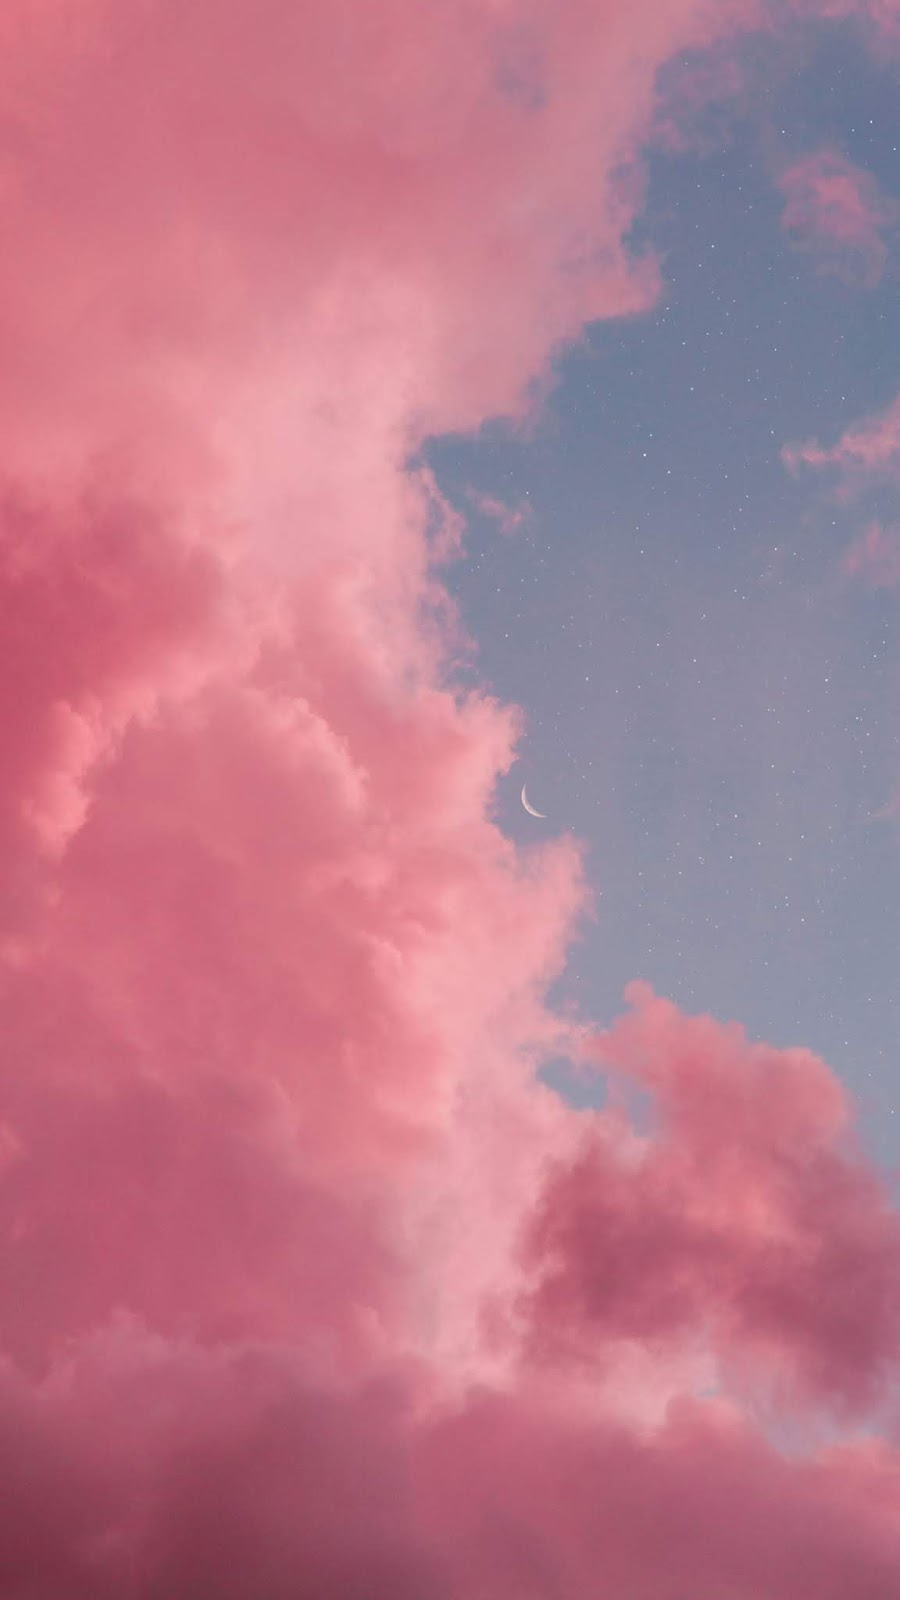 Crescent moon in the pink clouds